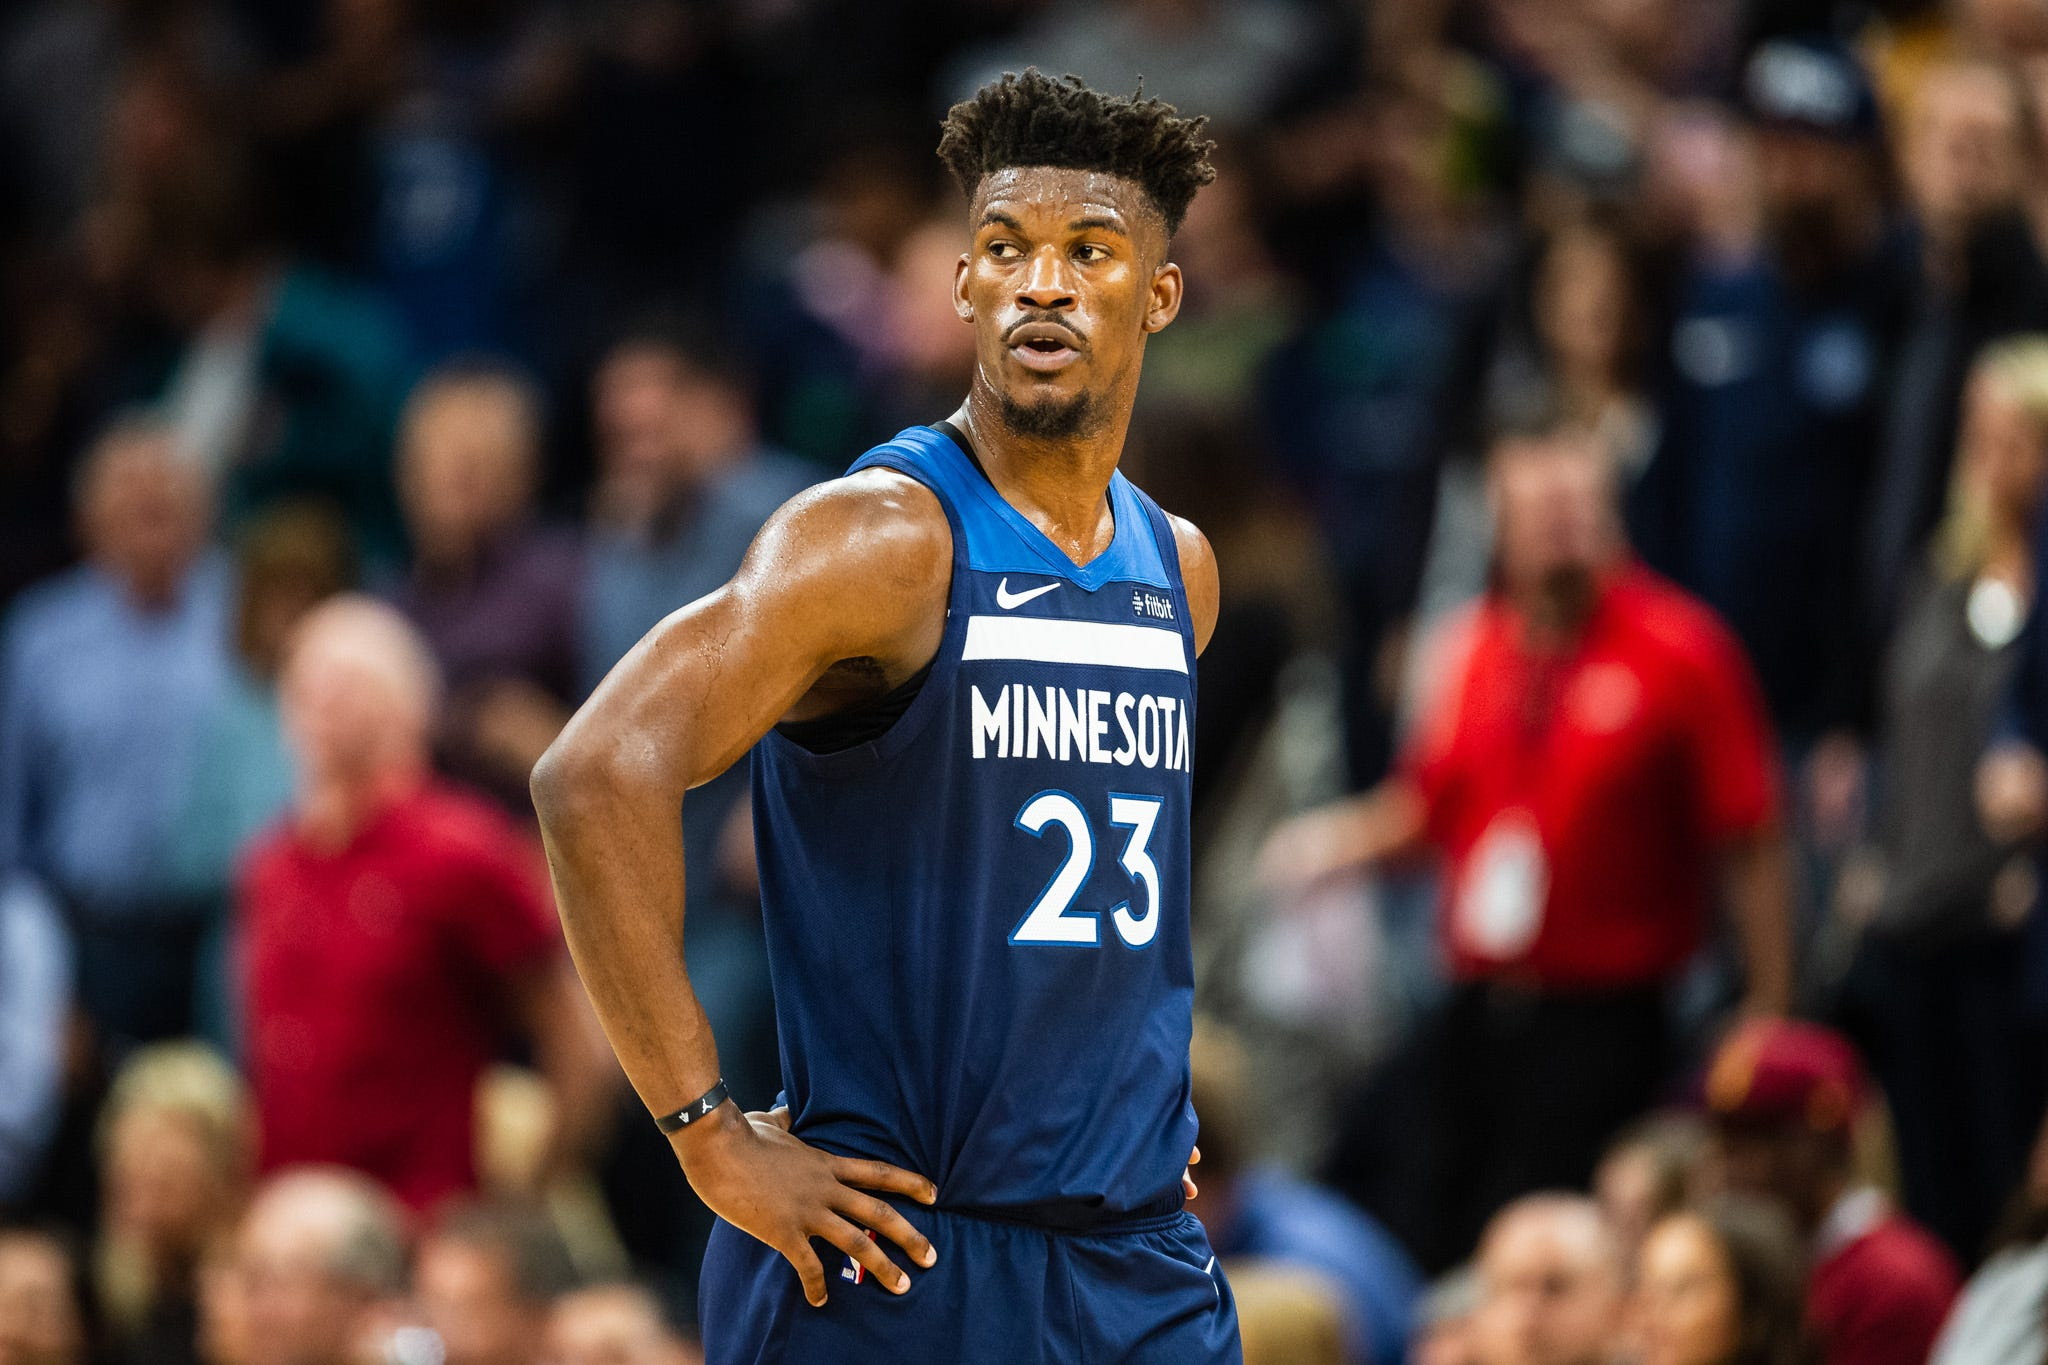 new style 5f7f2 74227 Jimmy Butler trade: What it means for the 76ers and T'wolves